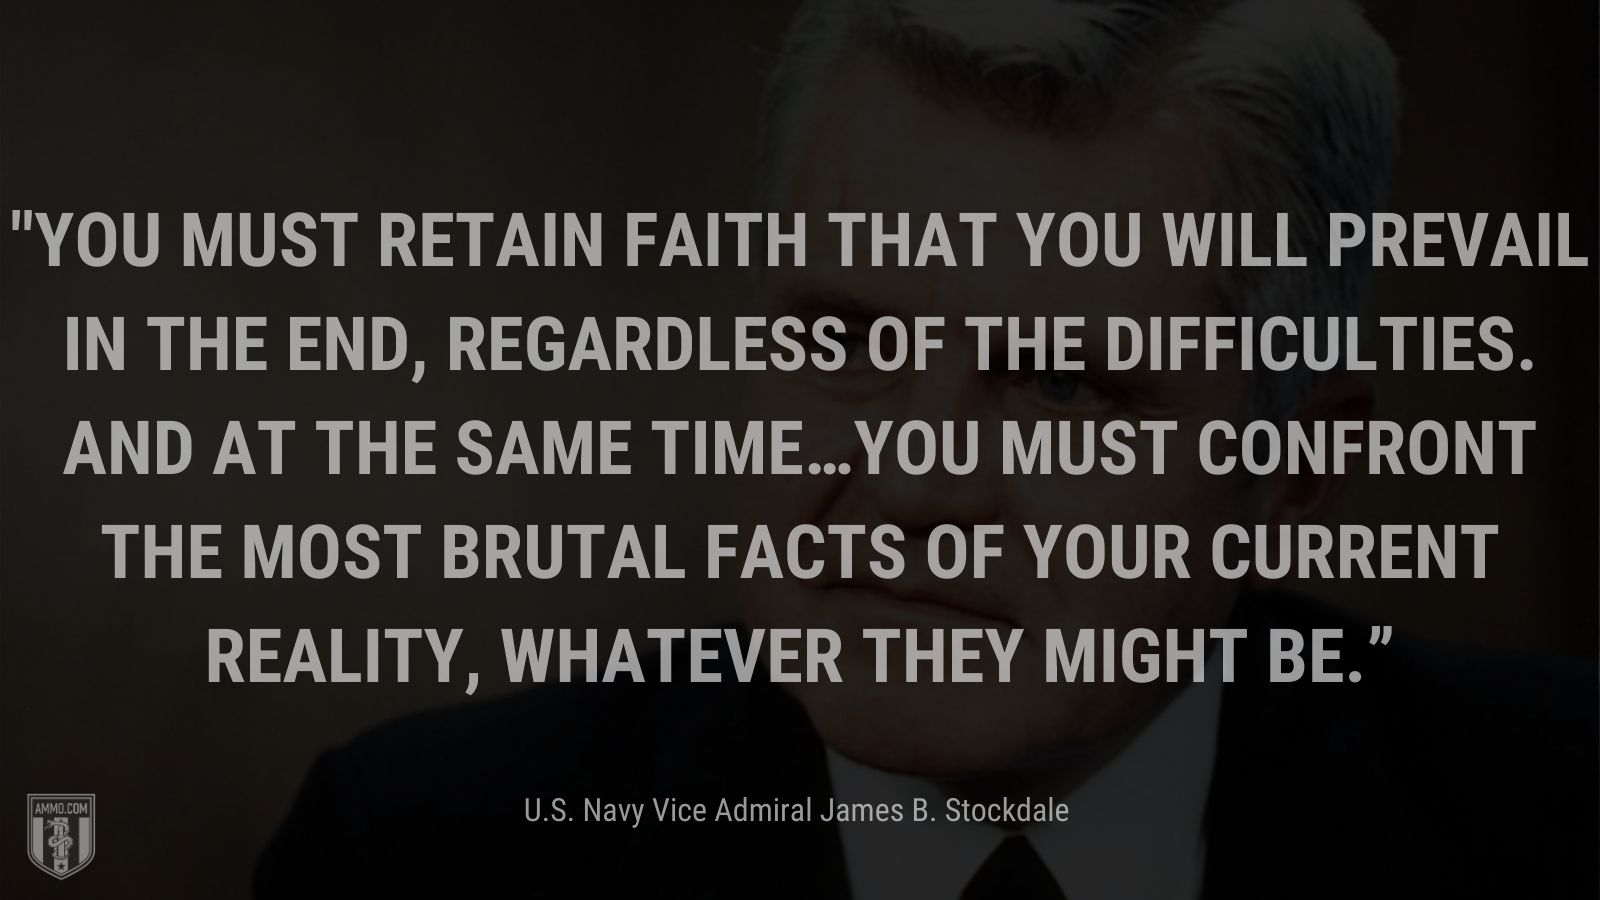 """""""You must retain faith that you will prevail in the end, regardless of the difficulties.AND at the same time…You must confront the most brutal facts of your current reality, whatever they might be."""" - U.S. Navy Vice Admiral James B. Stockdale"""